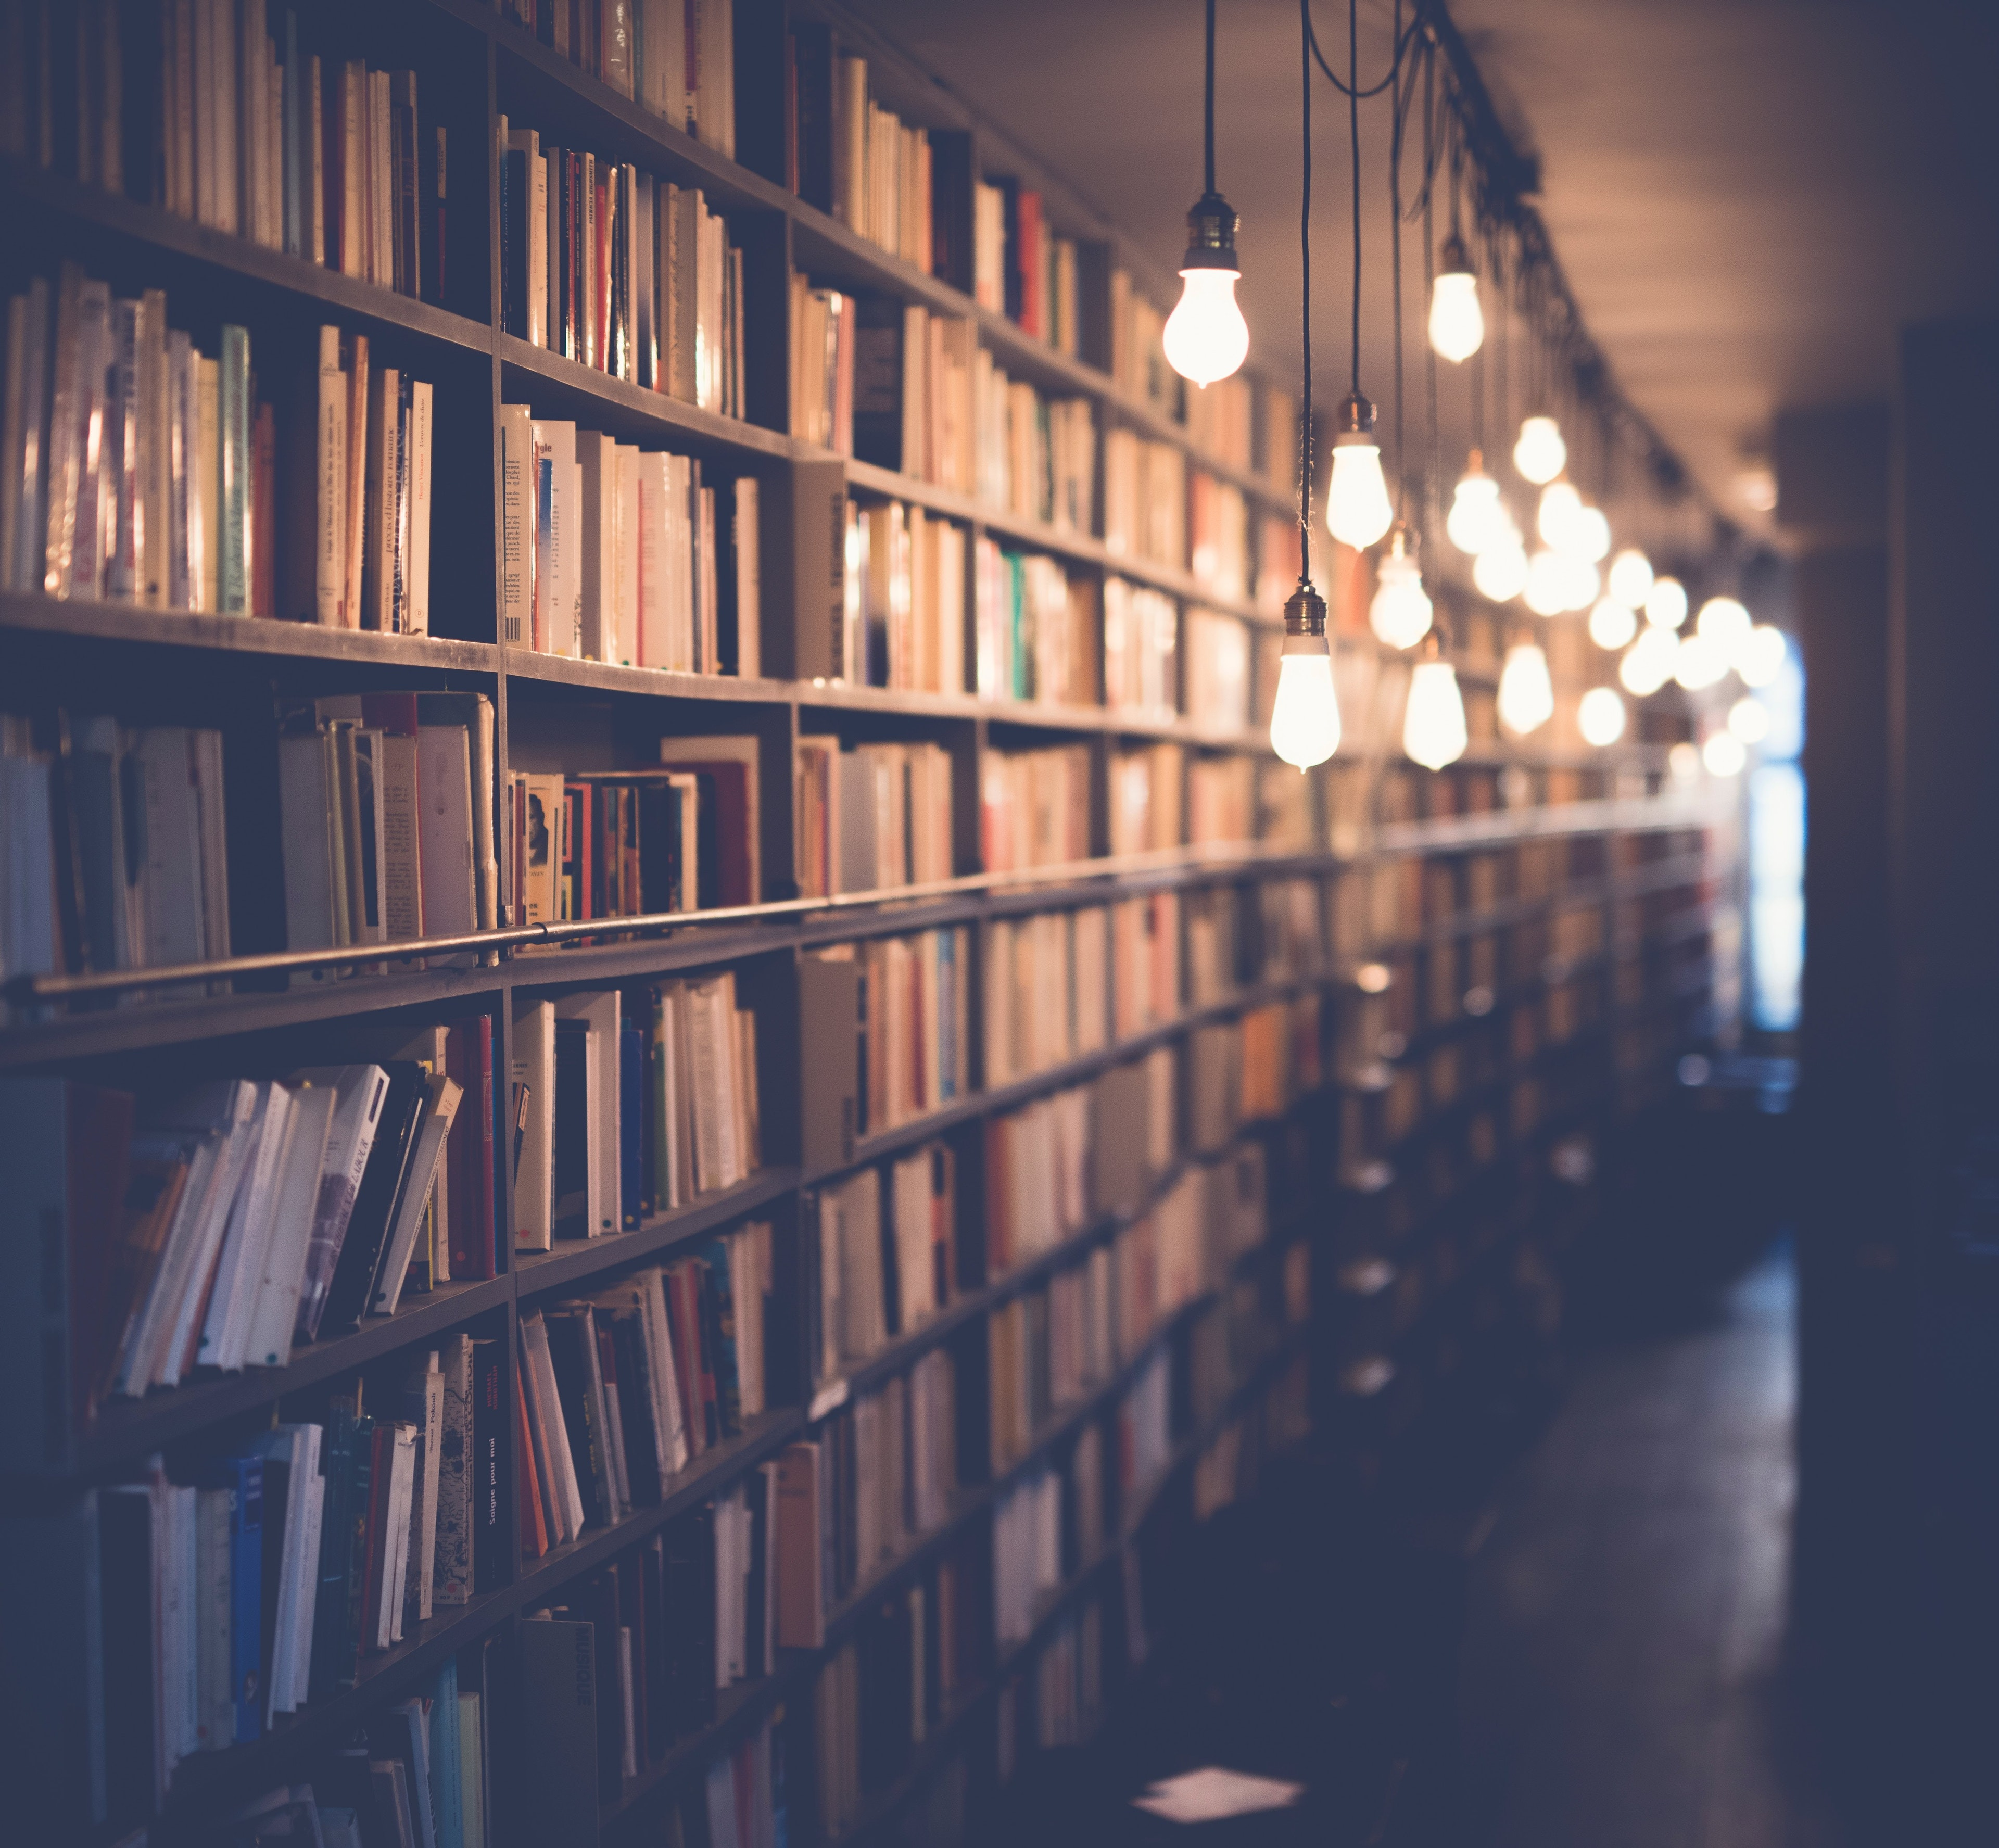 A row of bookshelves full of books, softly lit by a row of hanging lightbulbs